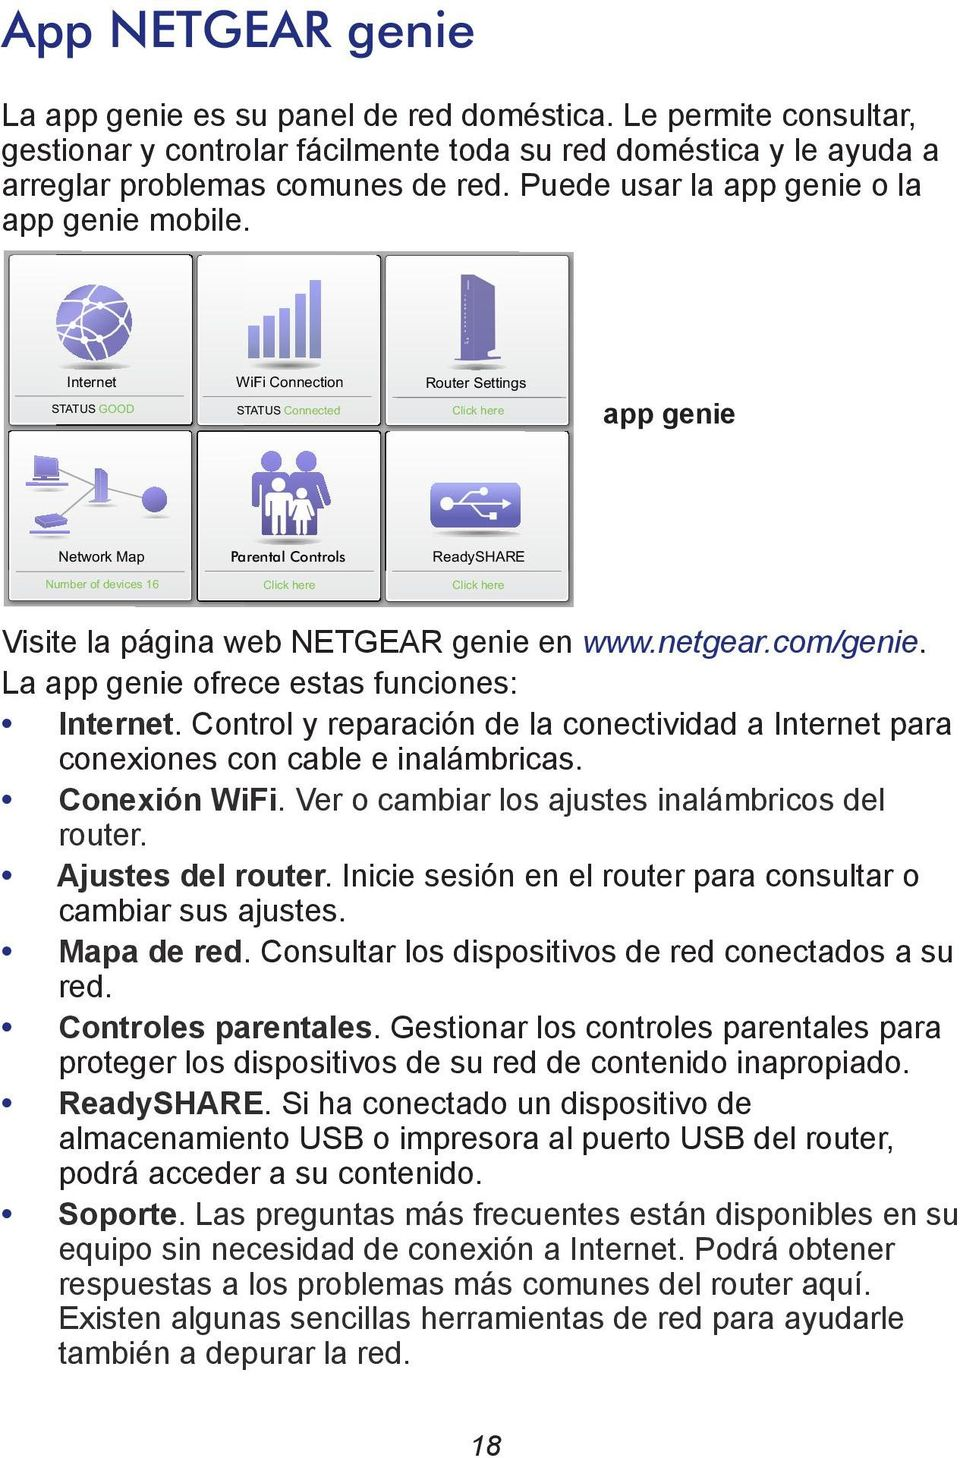 Internet STATUS GOOD WiFi Connection STATUS Connected Router Settings Click here app genie Network Map Parental Controls ReadySHARE Number of devices 16 Click here Click here Visite la página web